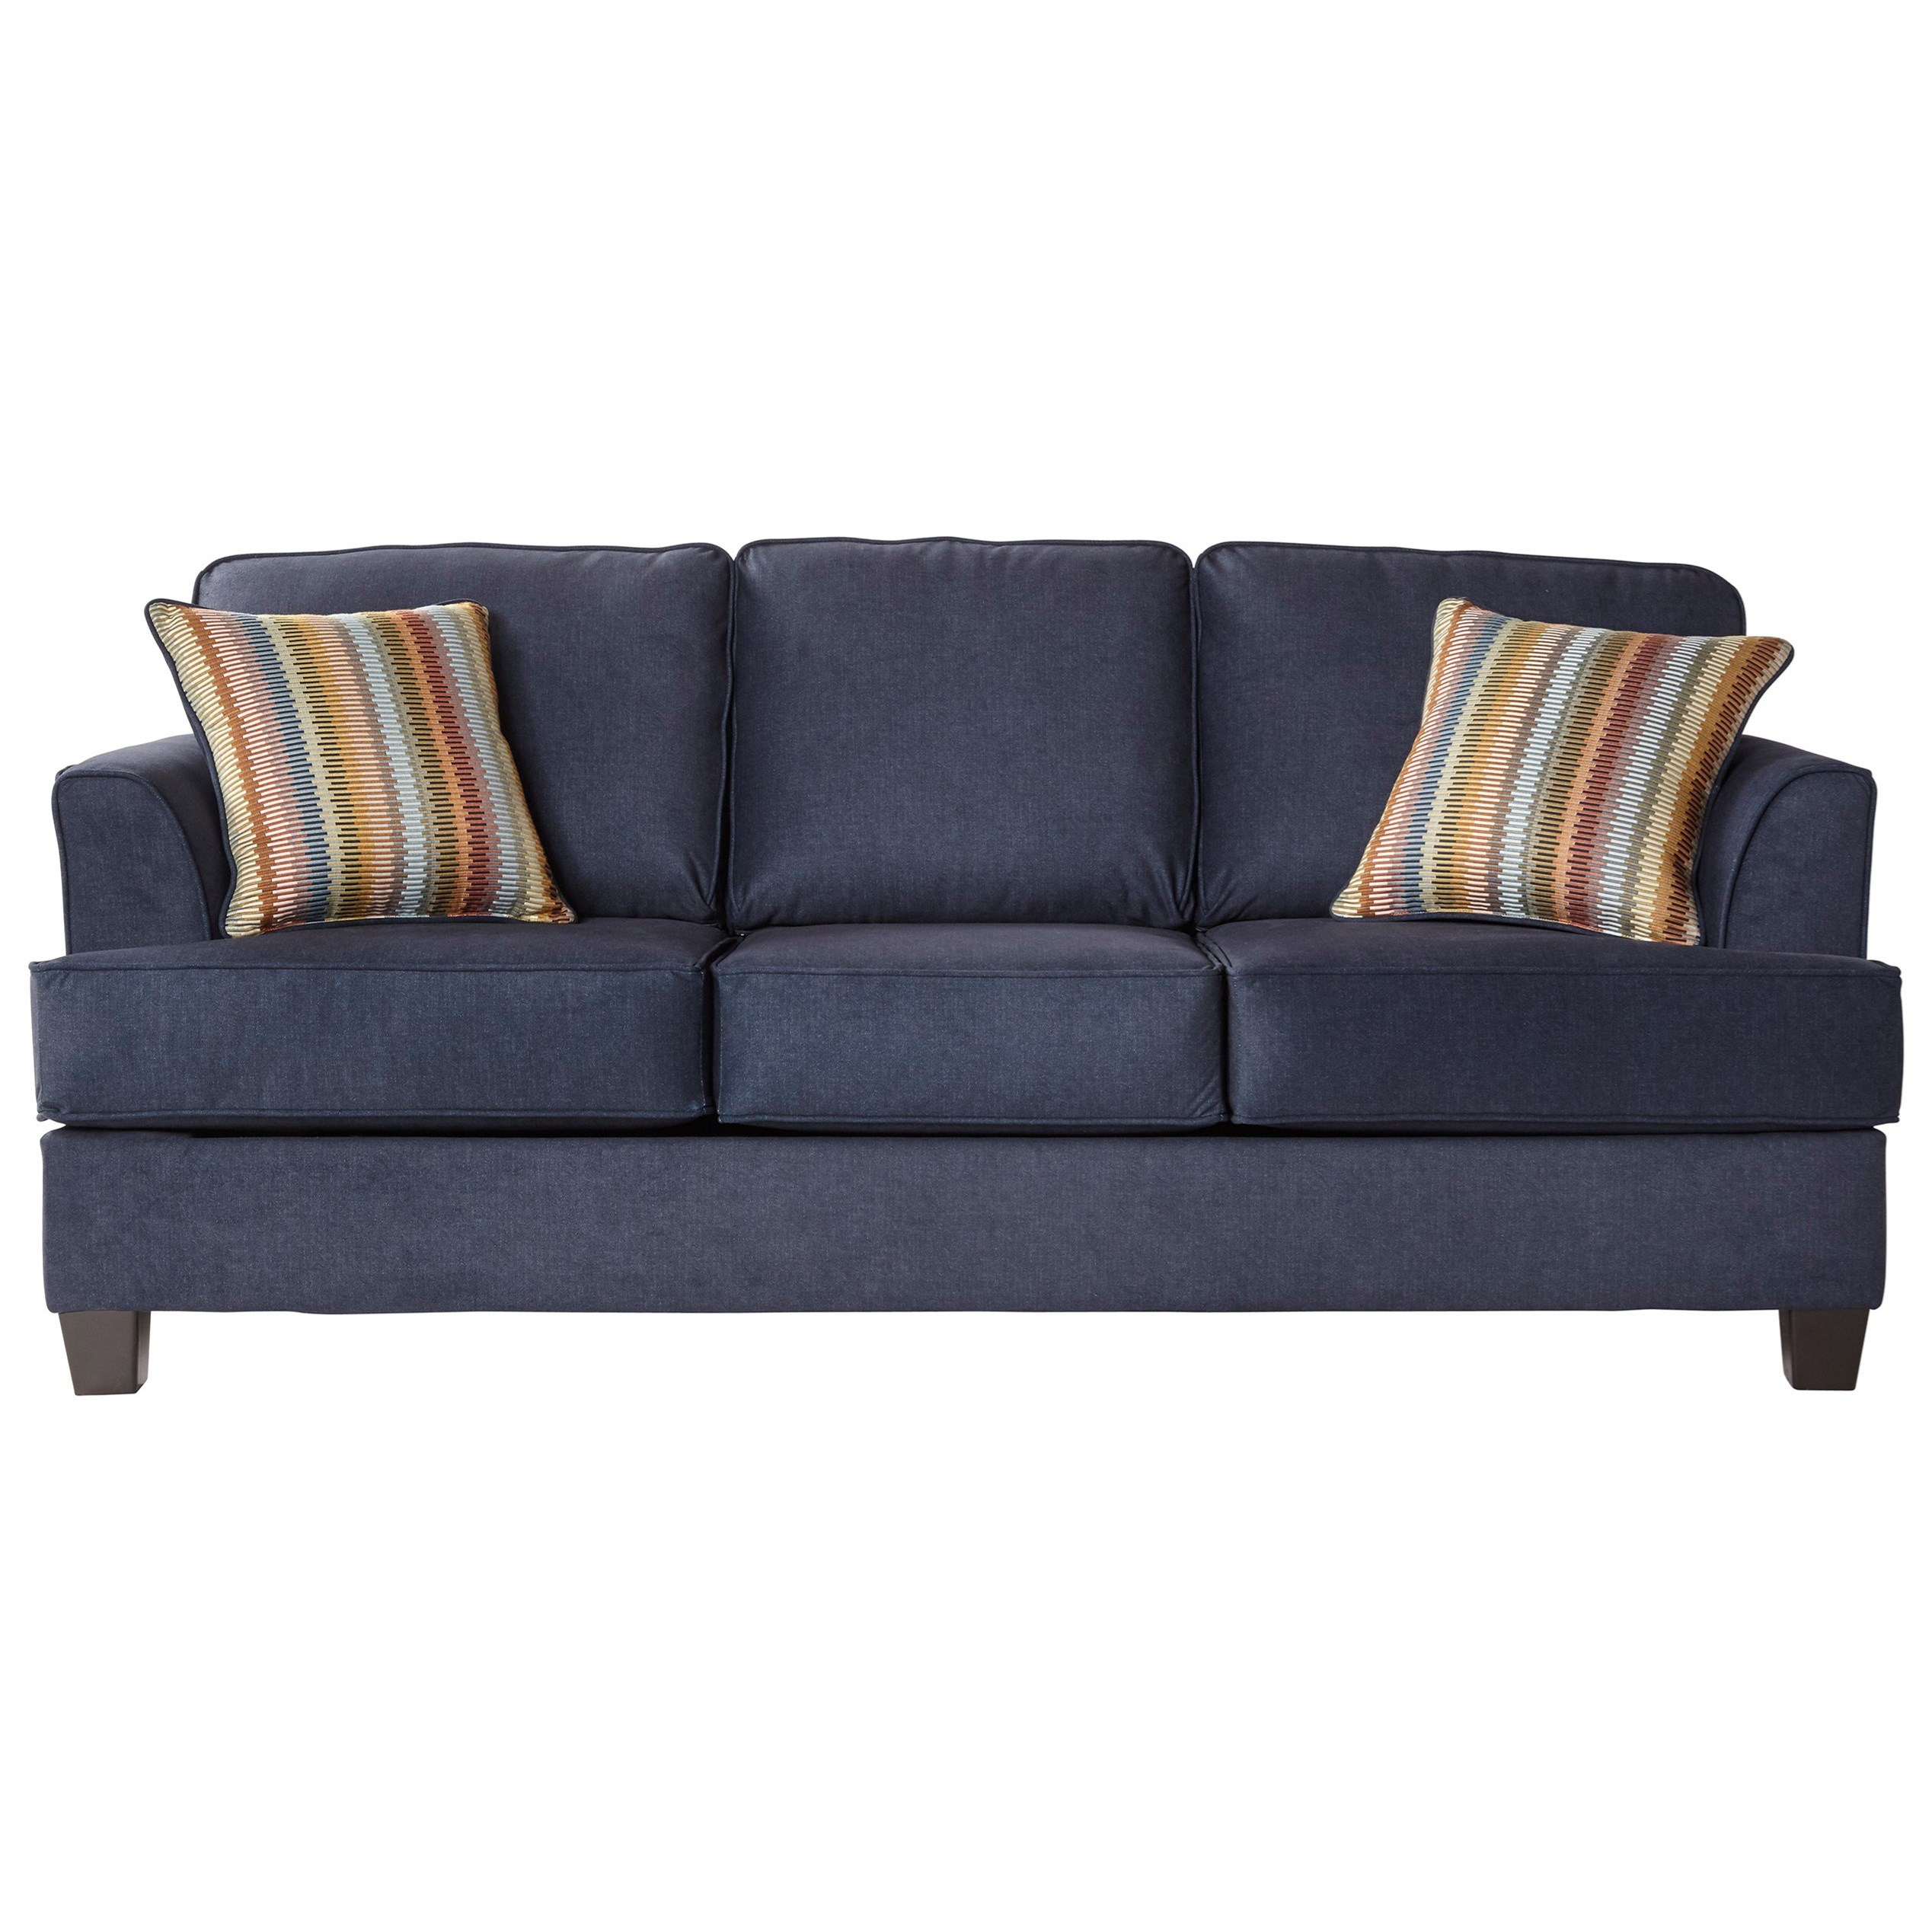 5650 Queen Sofa Sleeper by Serta Upholstery by Hughes Furniture at Rooms for Less